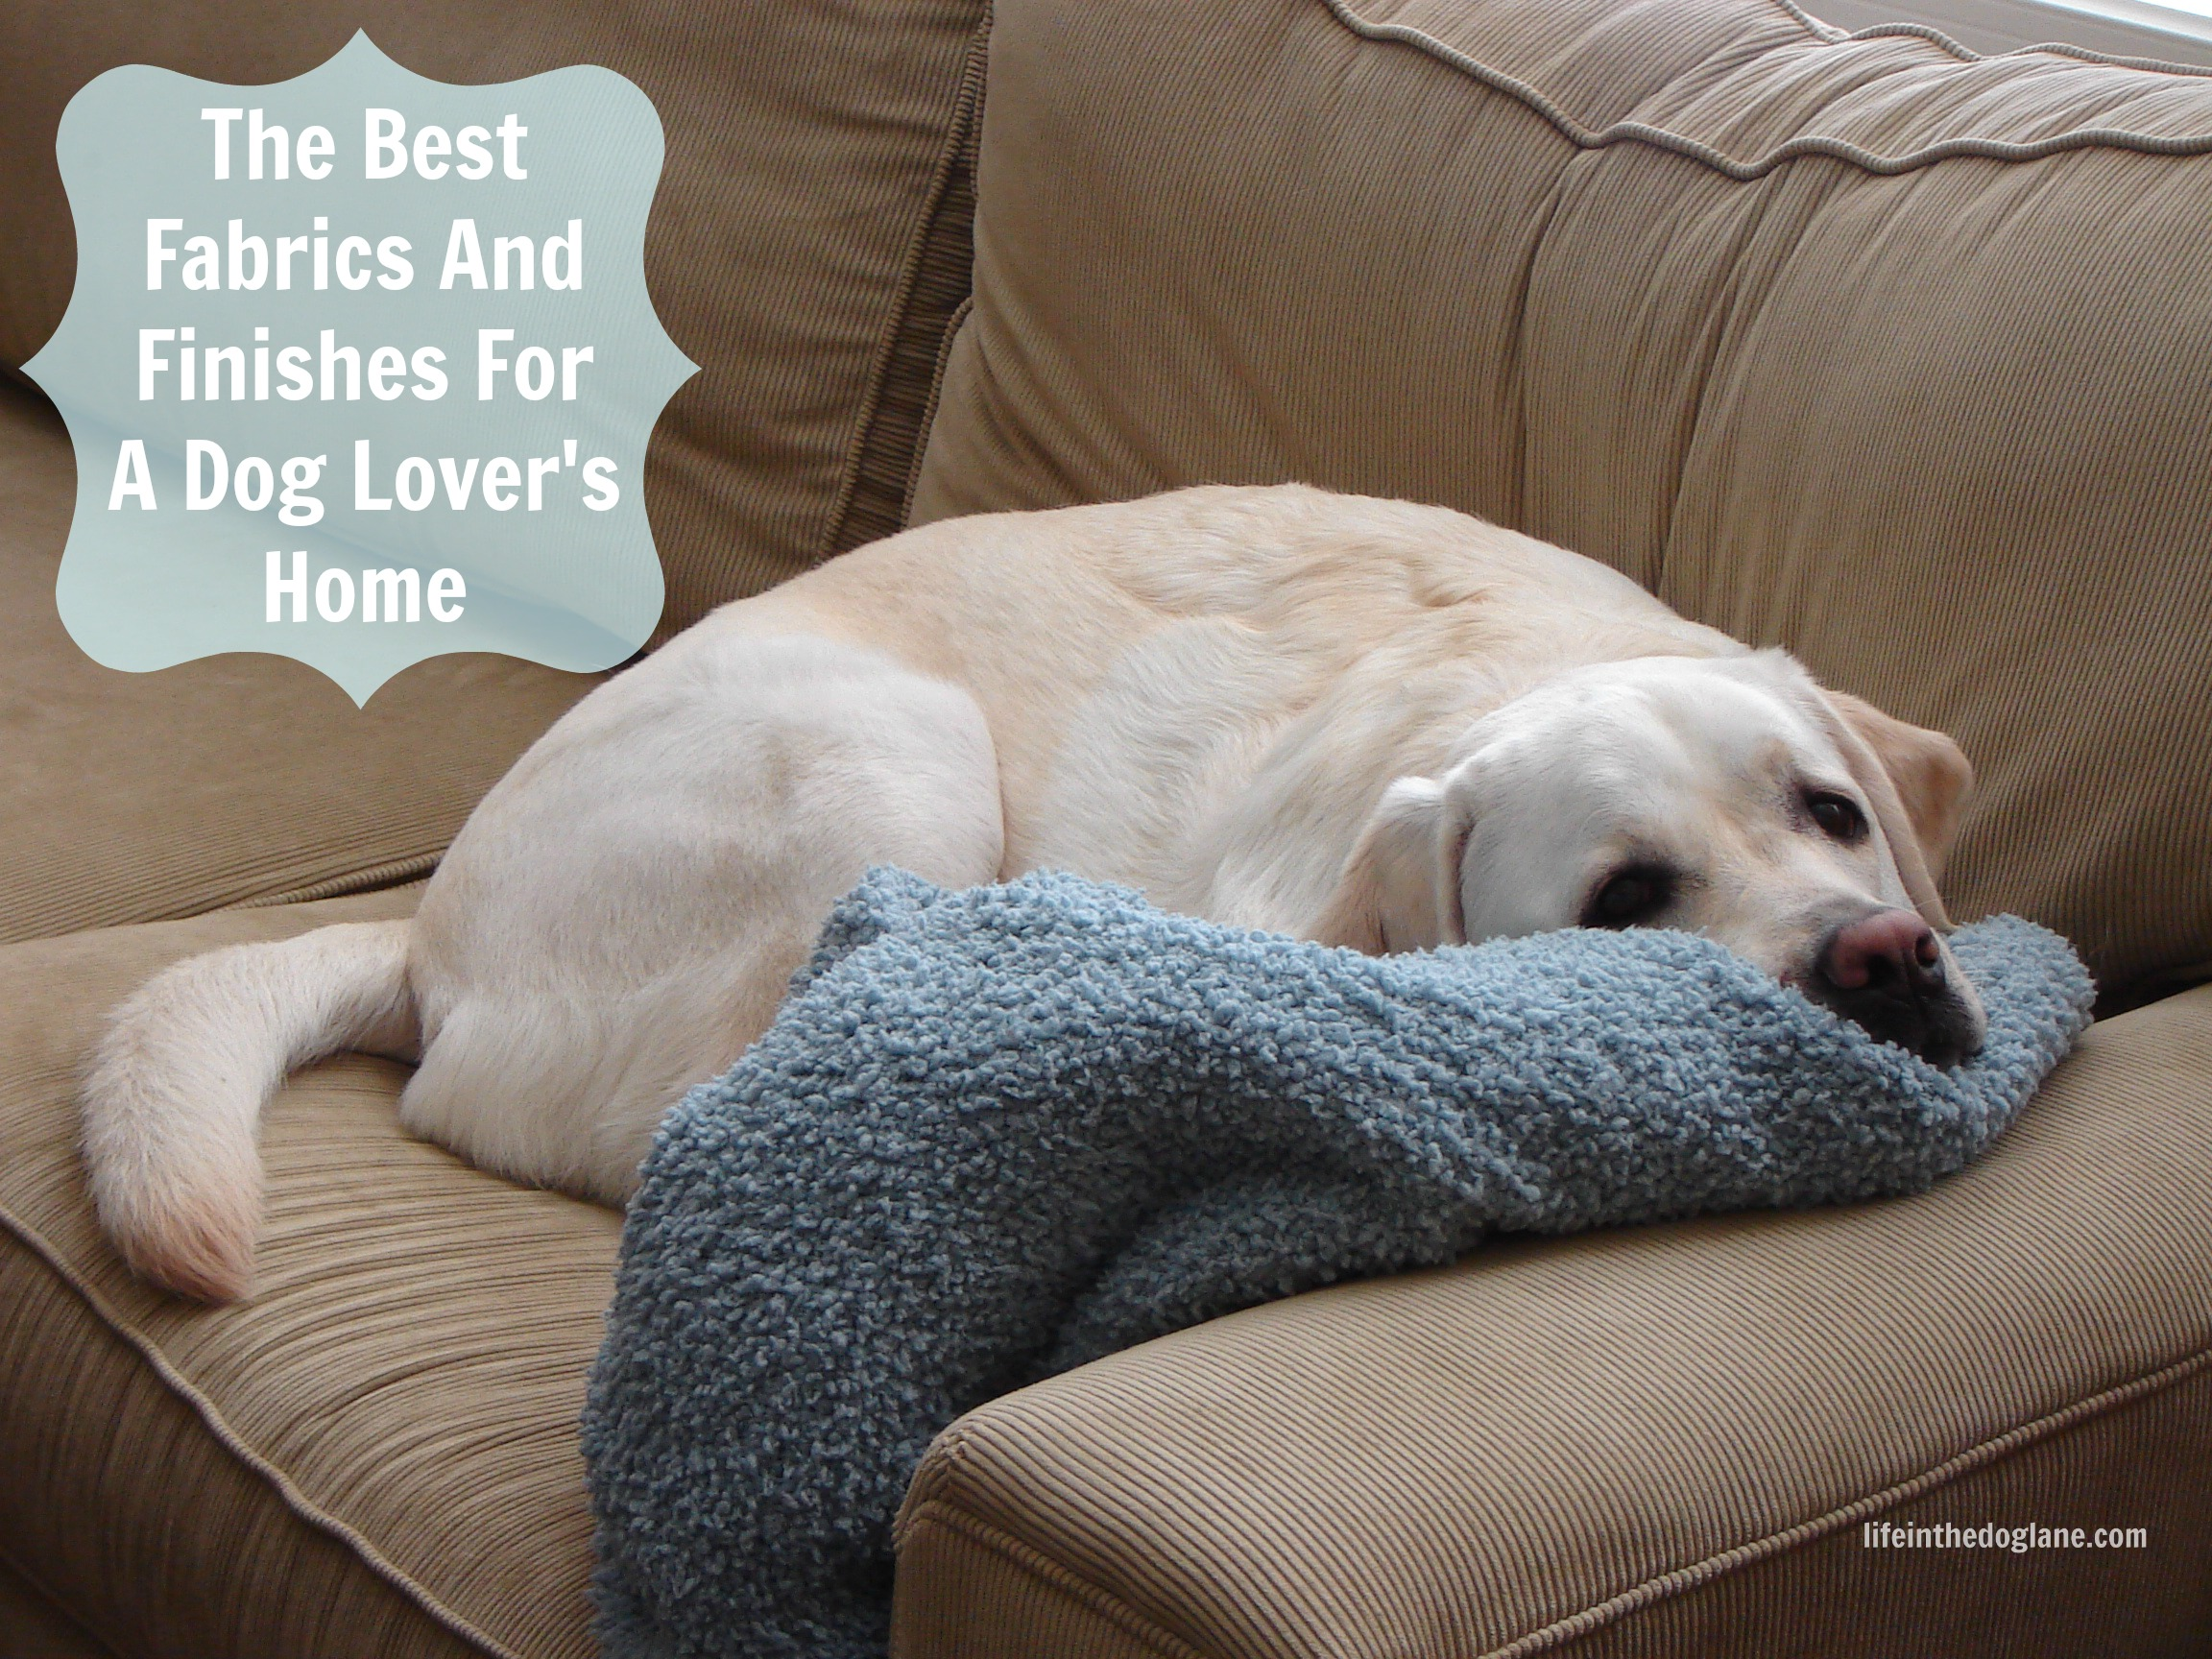 The Best And Worst Fabrics And Finishes For A Dog Lover S Home